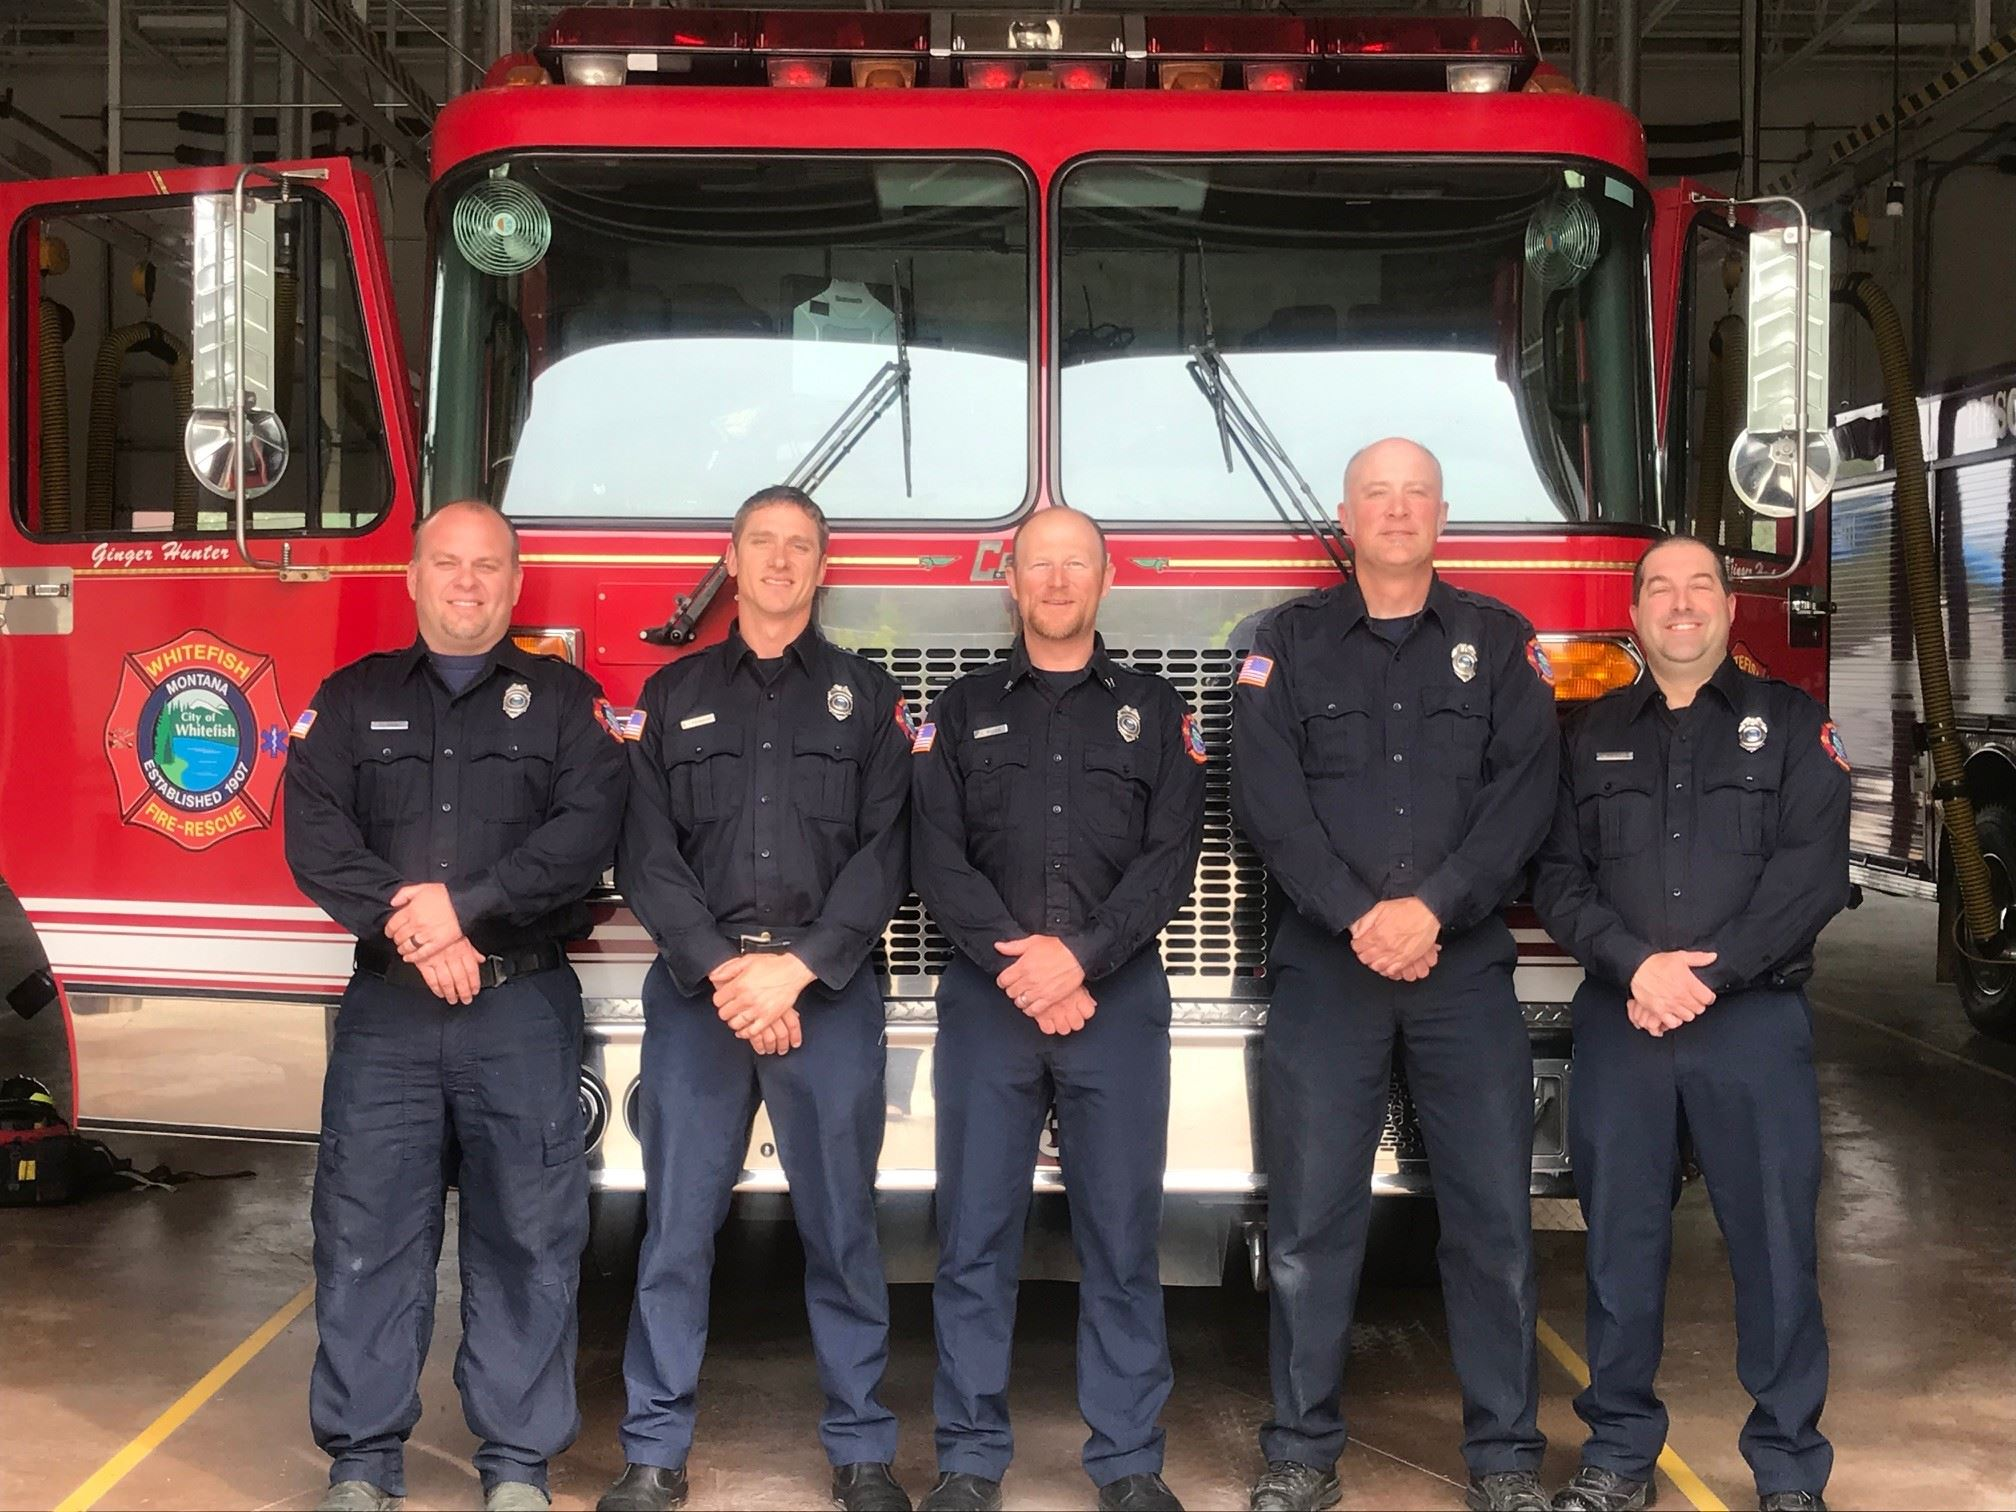 5 firefighter standing in front of a red and black fire truck